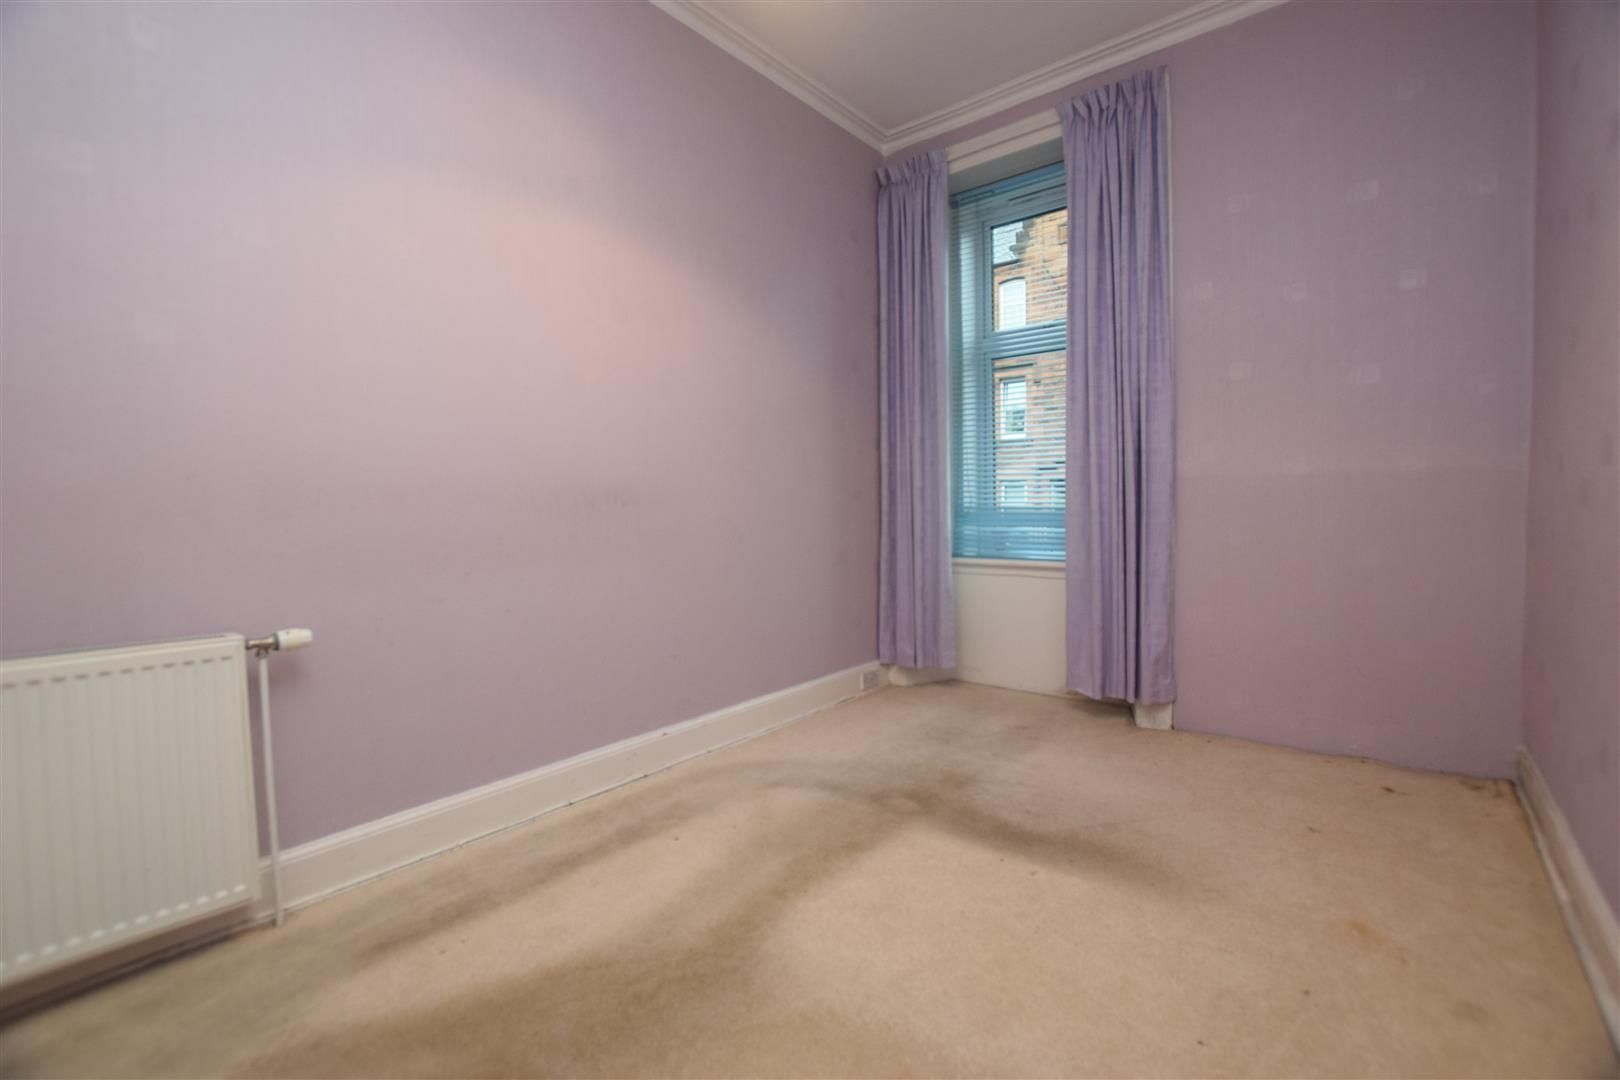 33A, Friar Street, Perth, Perthshire, PH2 0EG, UK